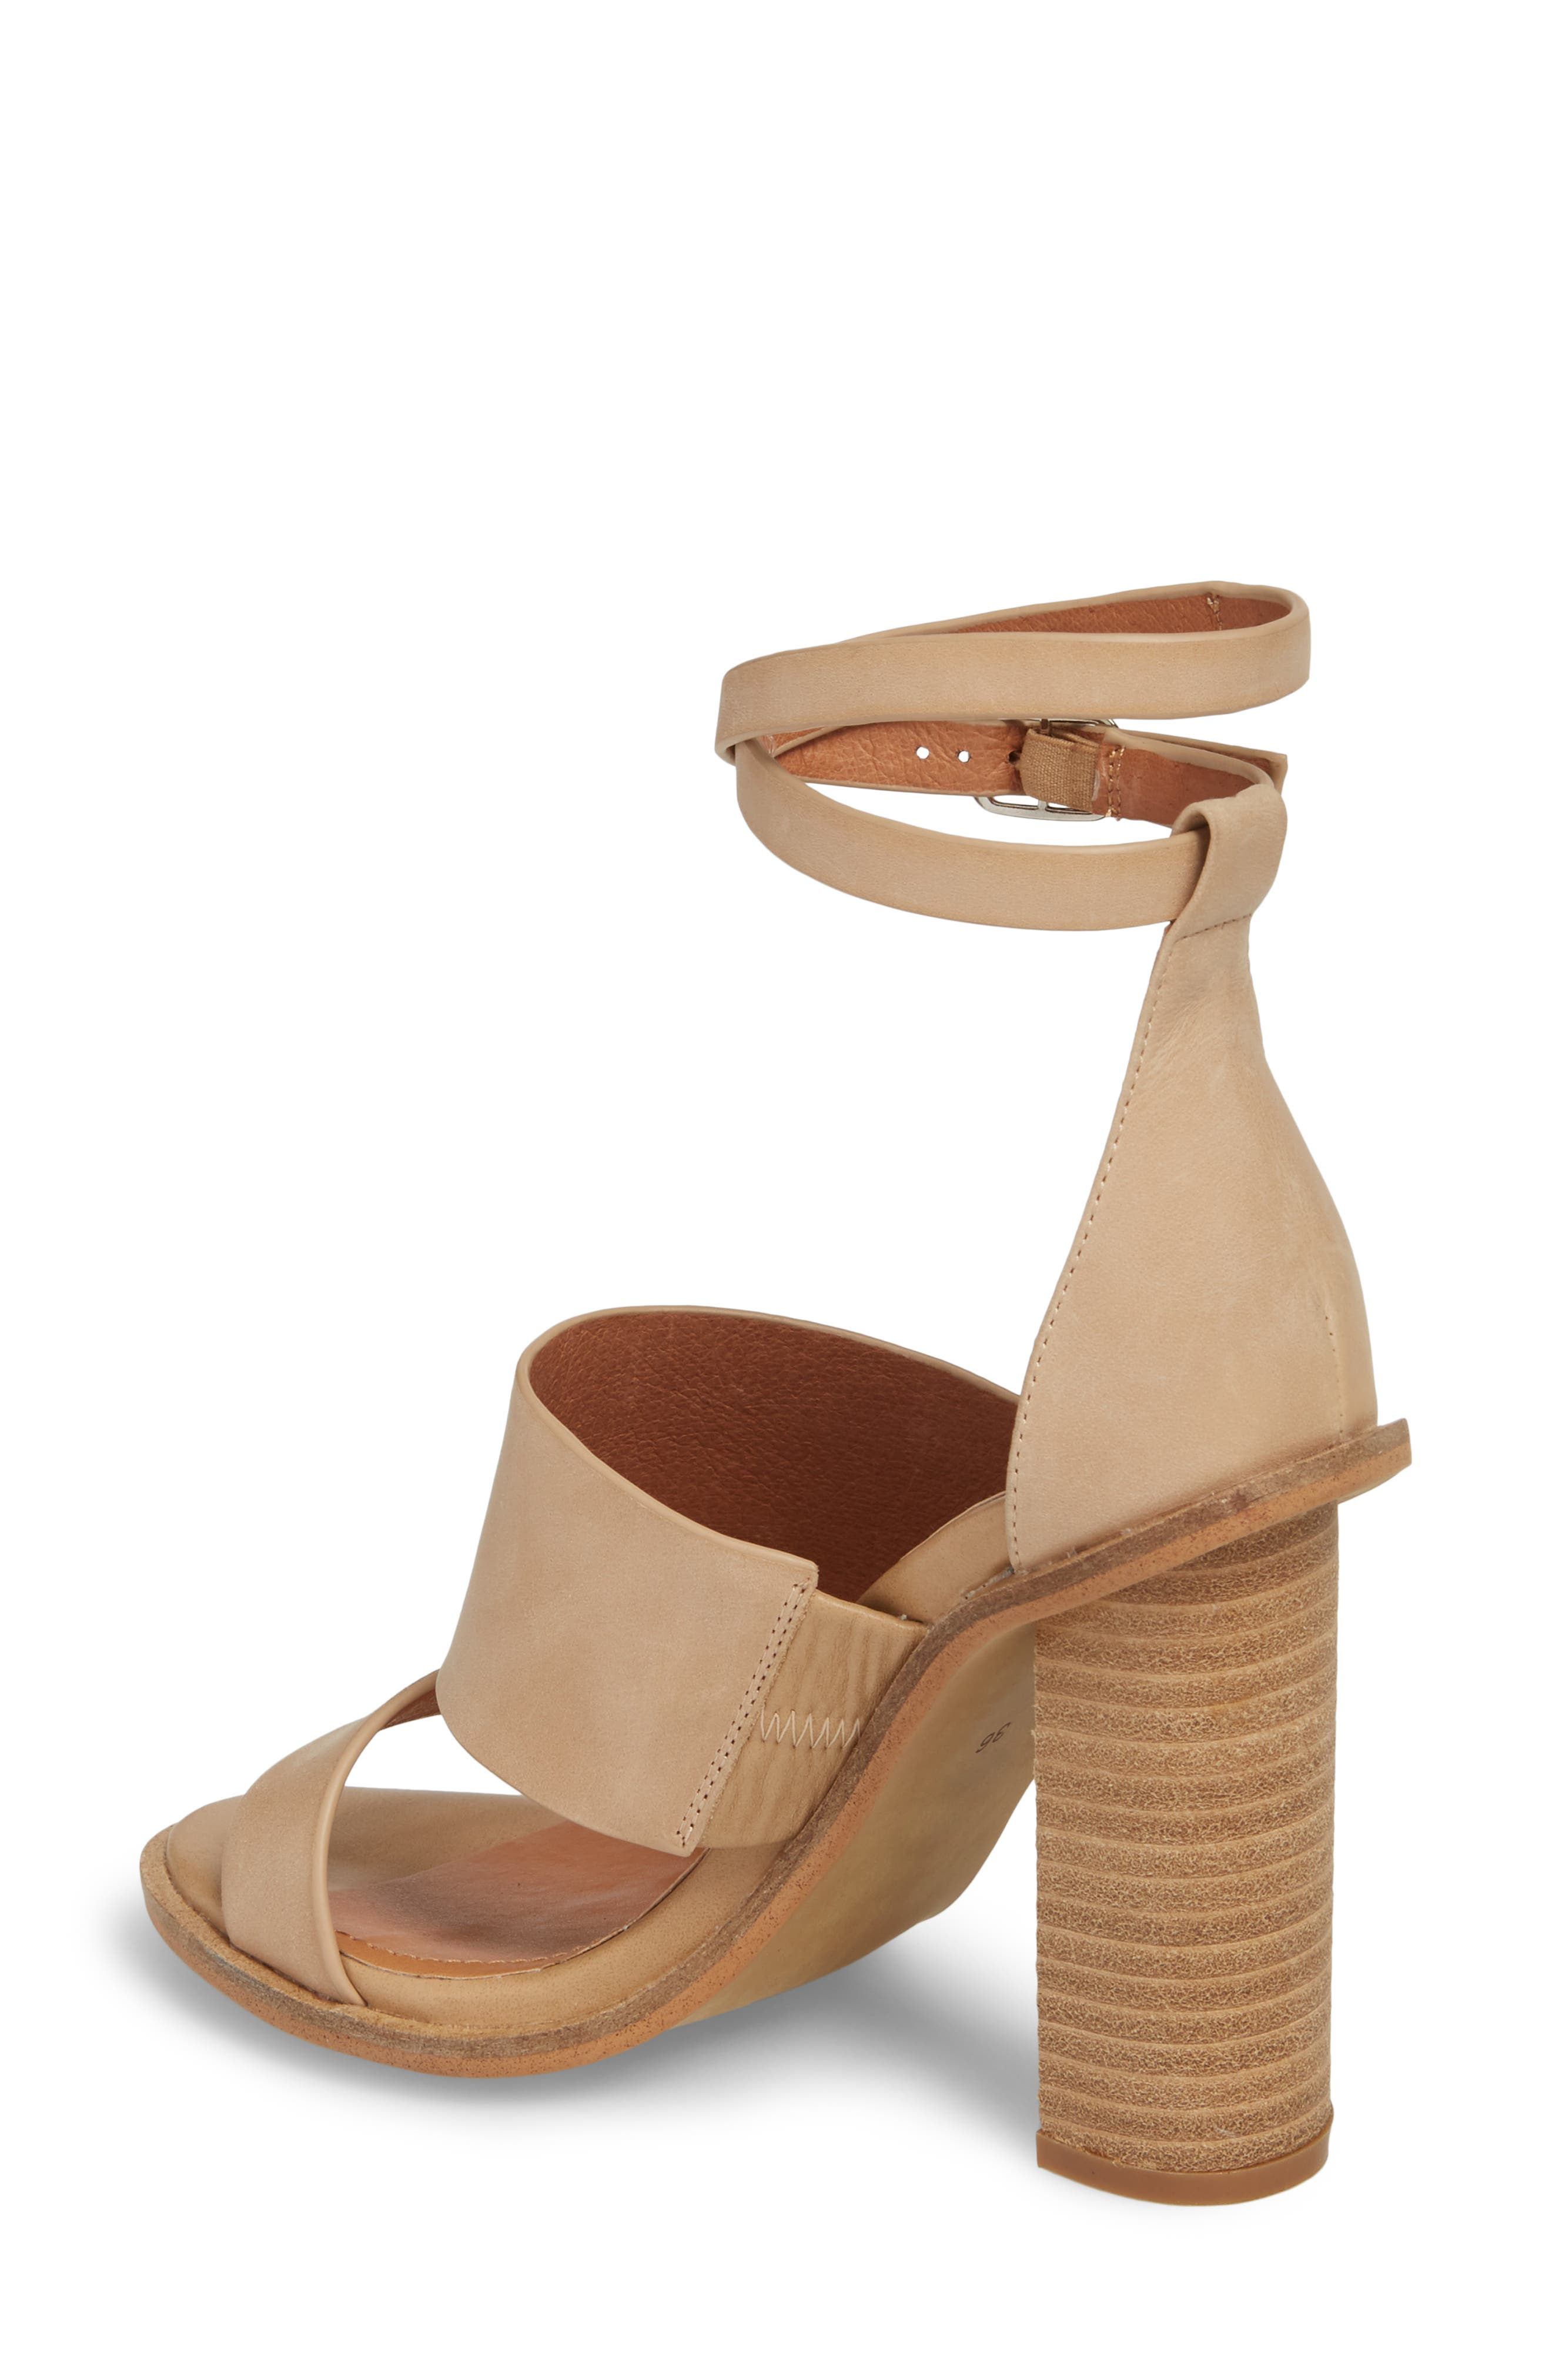 Admiral Ankle Wrap Sandal,                             Alternate thumbnail 2, color,                             Natural Leather